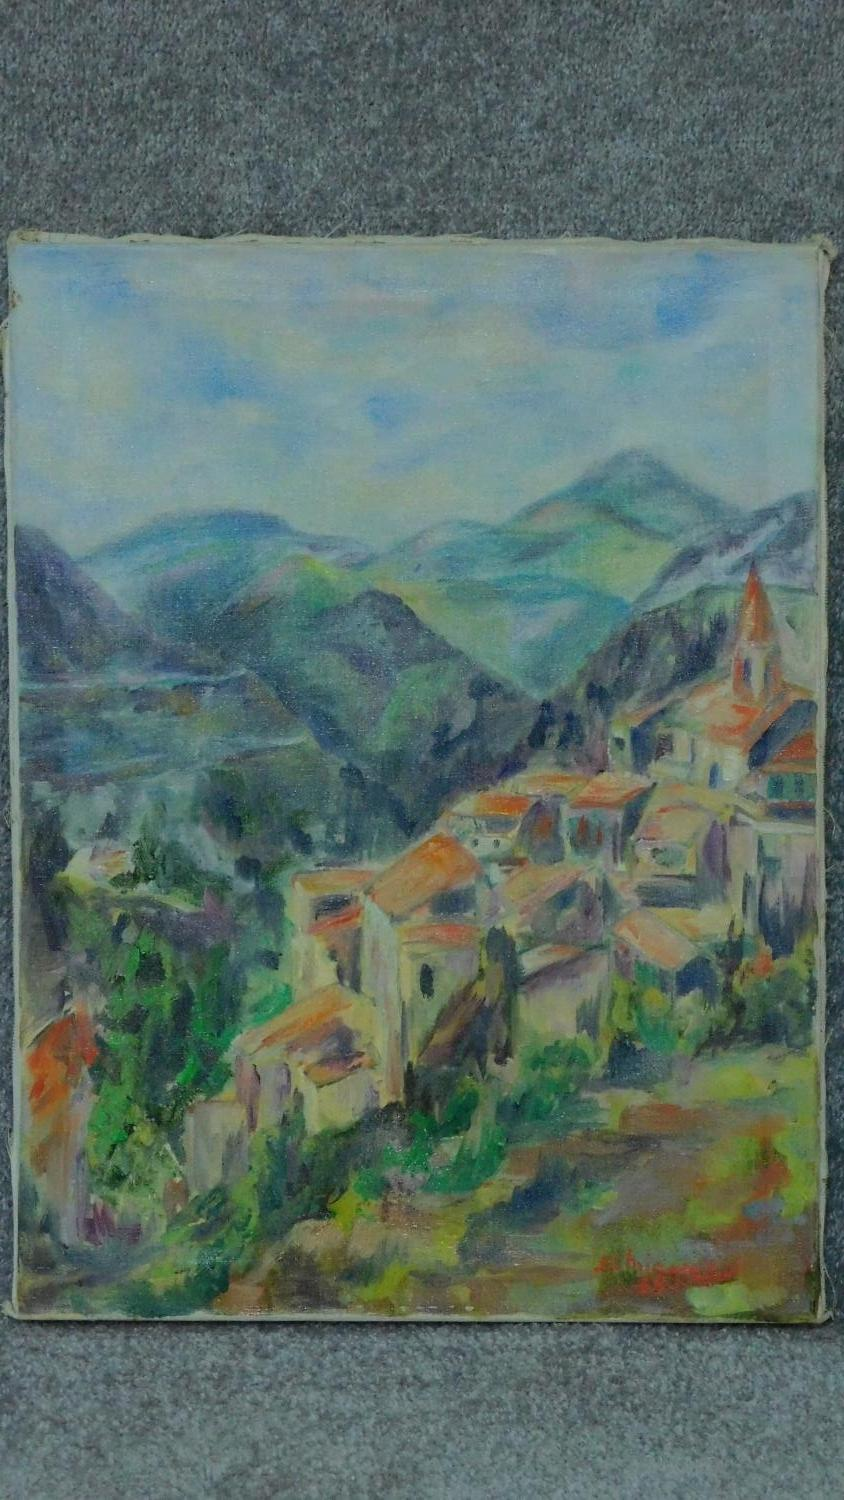 An unframed oil on canvas, Sardinian landscape, signed J C Michel 69. 61x46cm